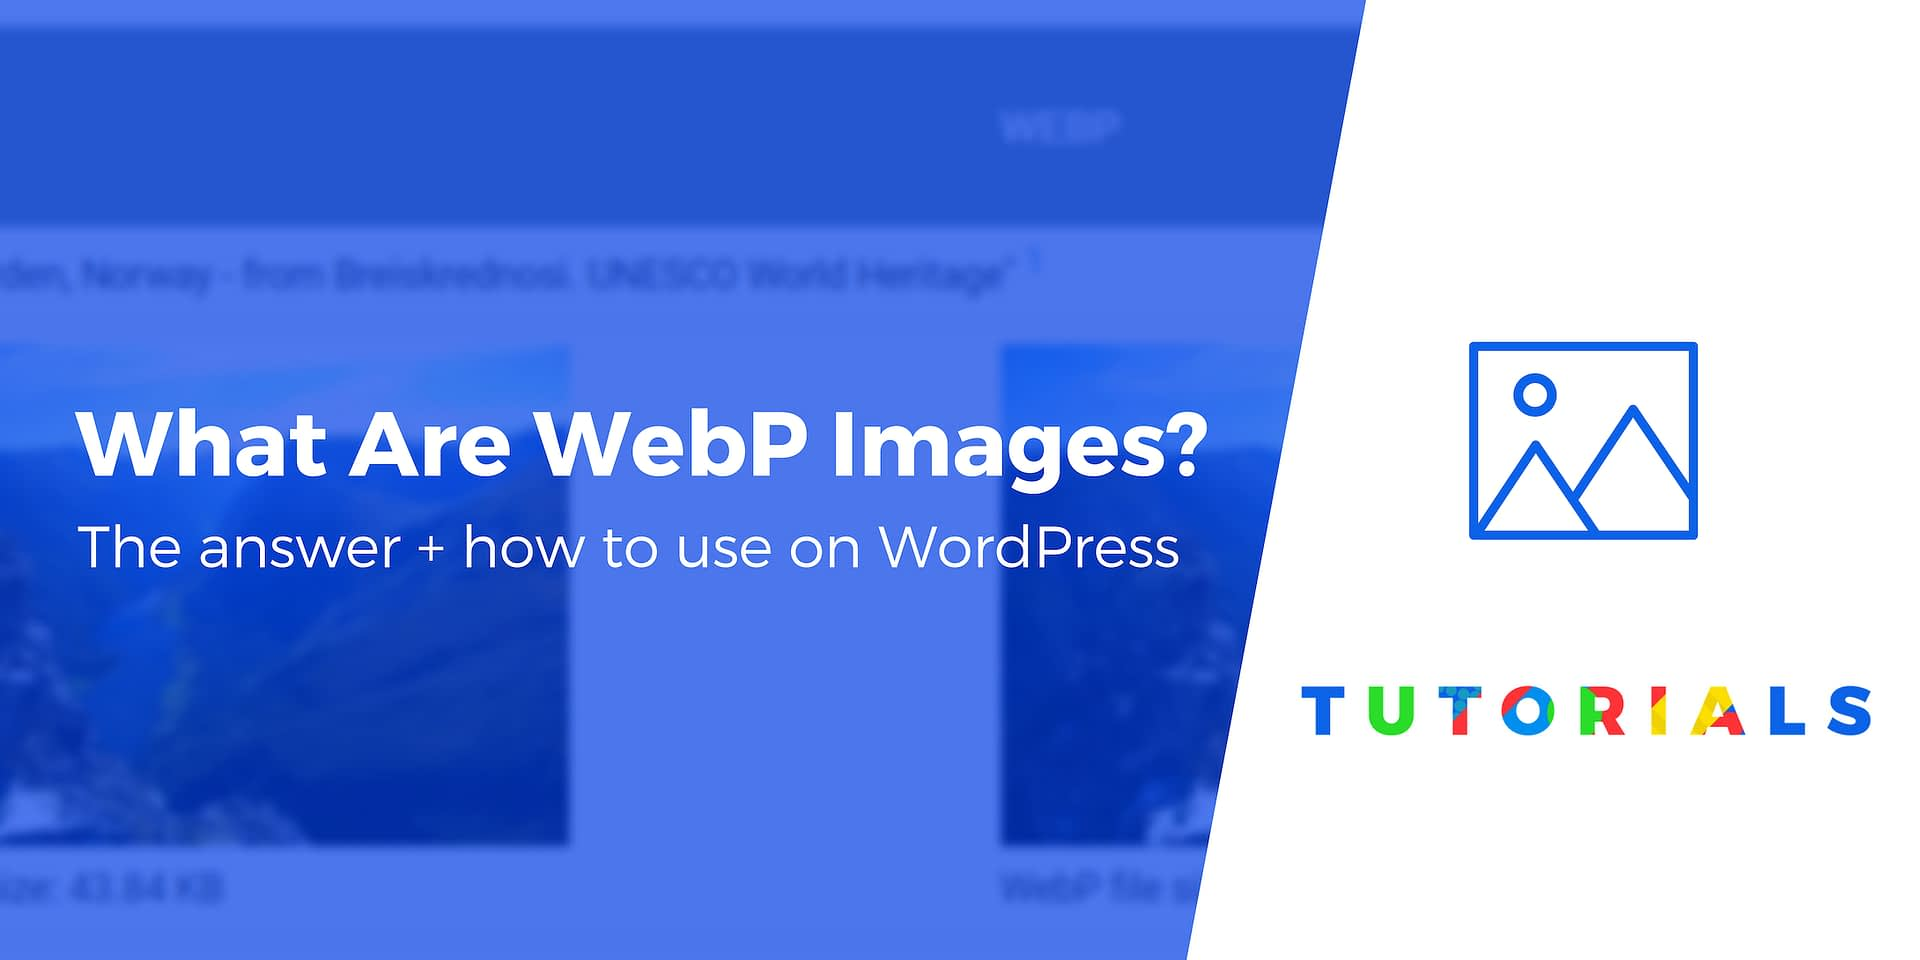 What Is WebP? Plus How to Use WebP Images in WordPress